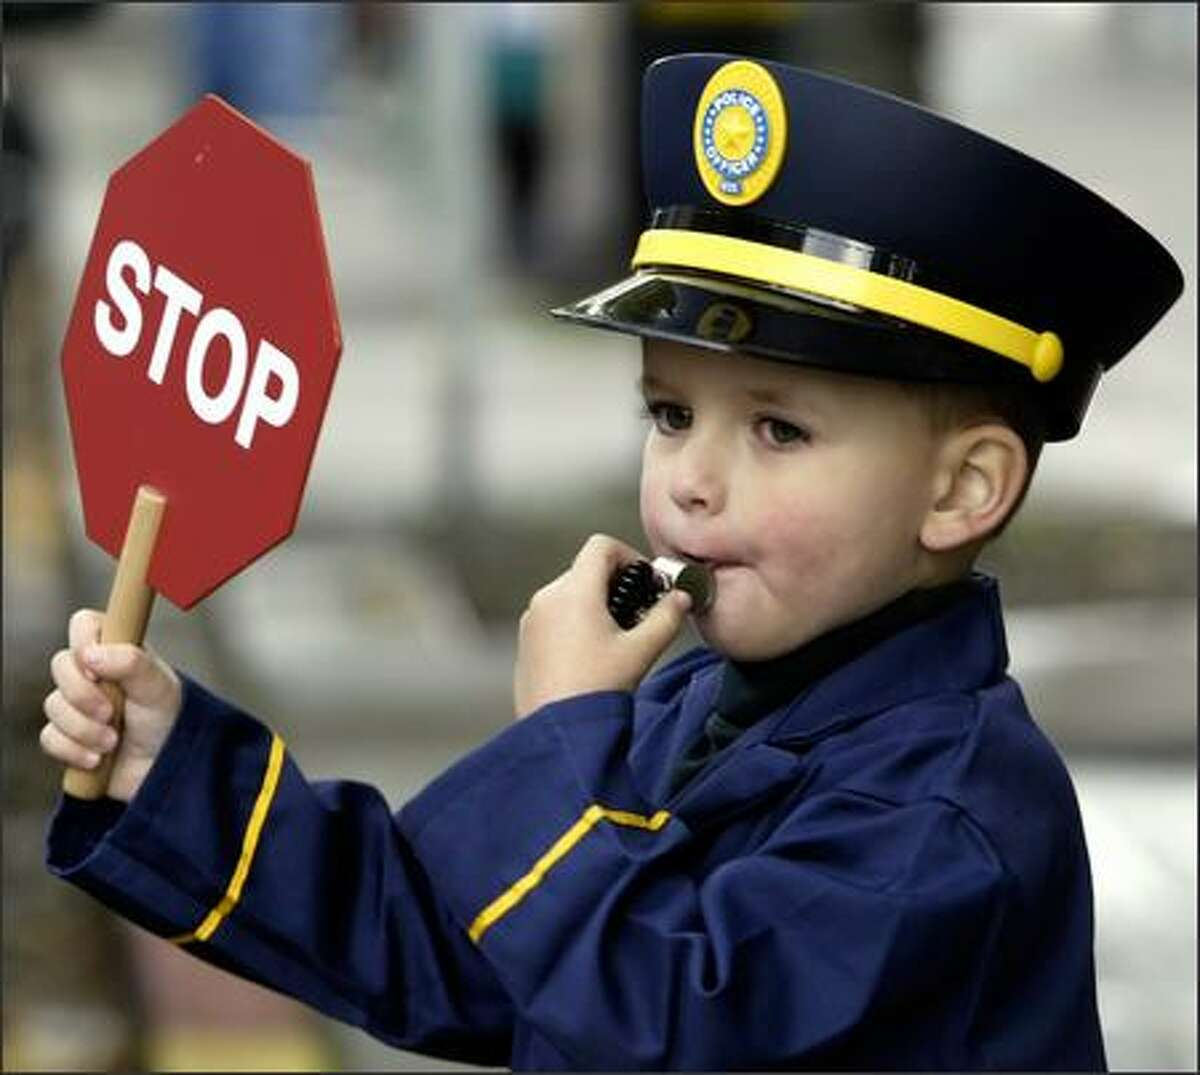 Ben Davis, 3 1/2, of Mercer Island plays the role of the traffic cop he's dressed as, holding up a stop sign and blowing his whistle at a pedestrian crosswalk on Alaskan Way on Sunday during Trick or Treat on the Waterfront, sponsored by the Seattle Aquarium.